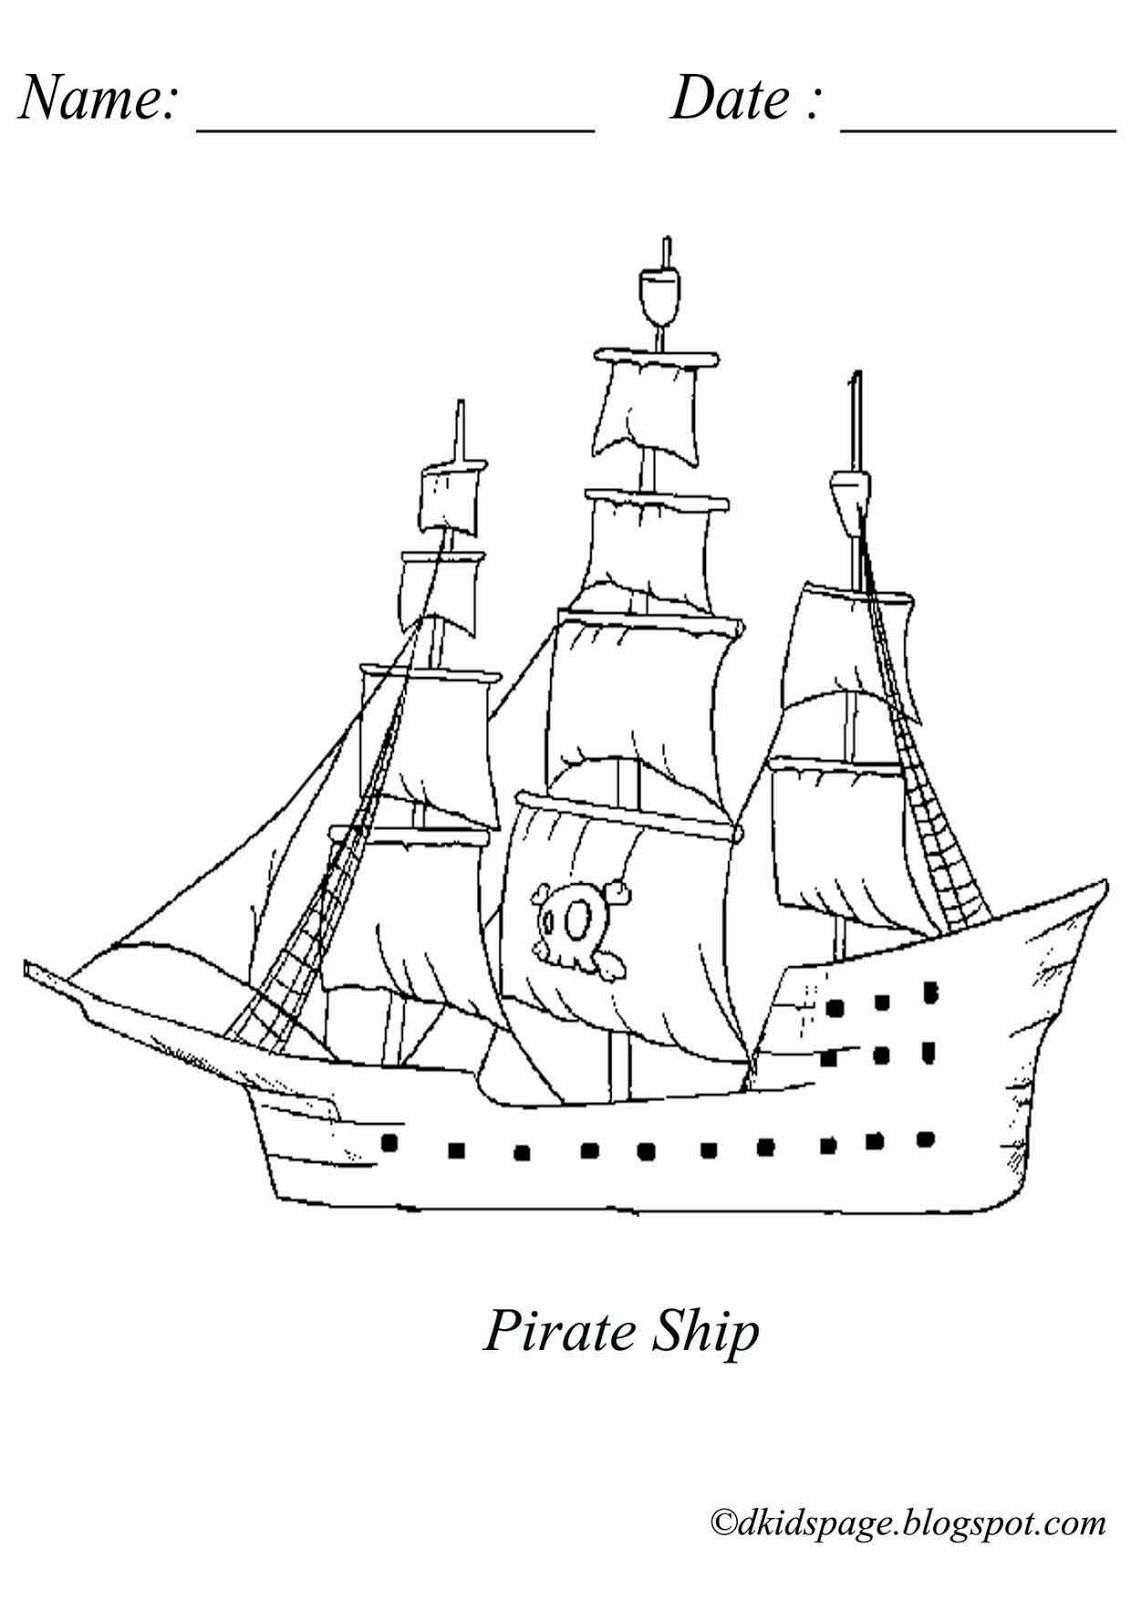 Kids Page Pirate Ship Coloring Page Pirate Ship Drawing Ship Drawing Pictures Of Pirate Ships